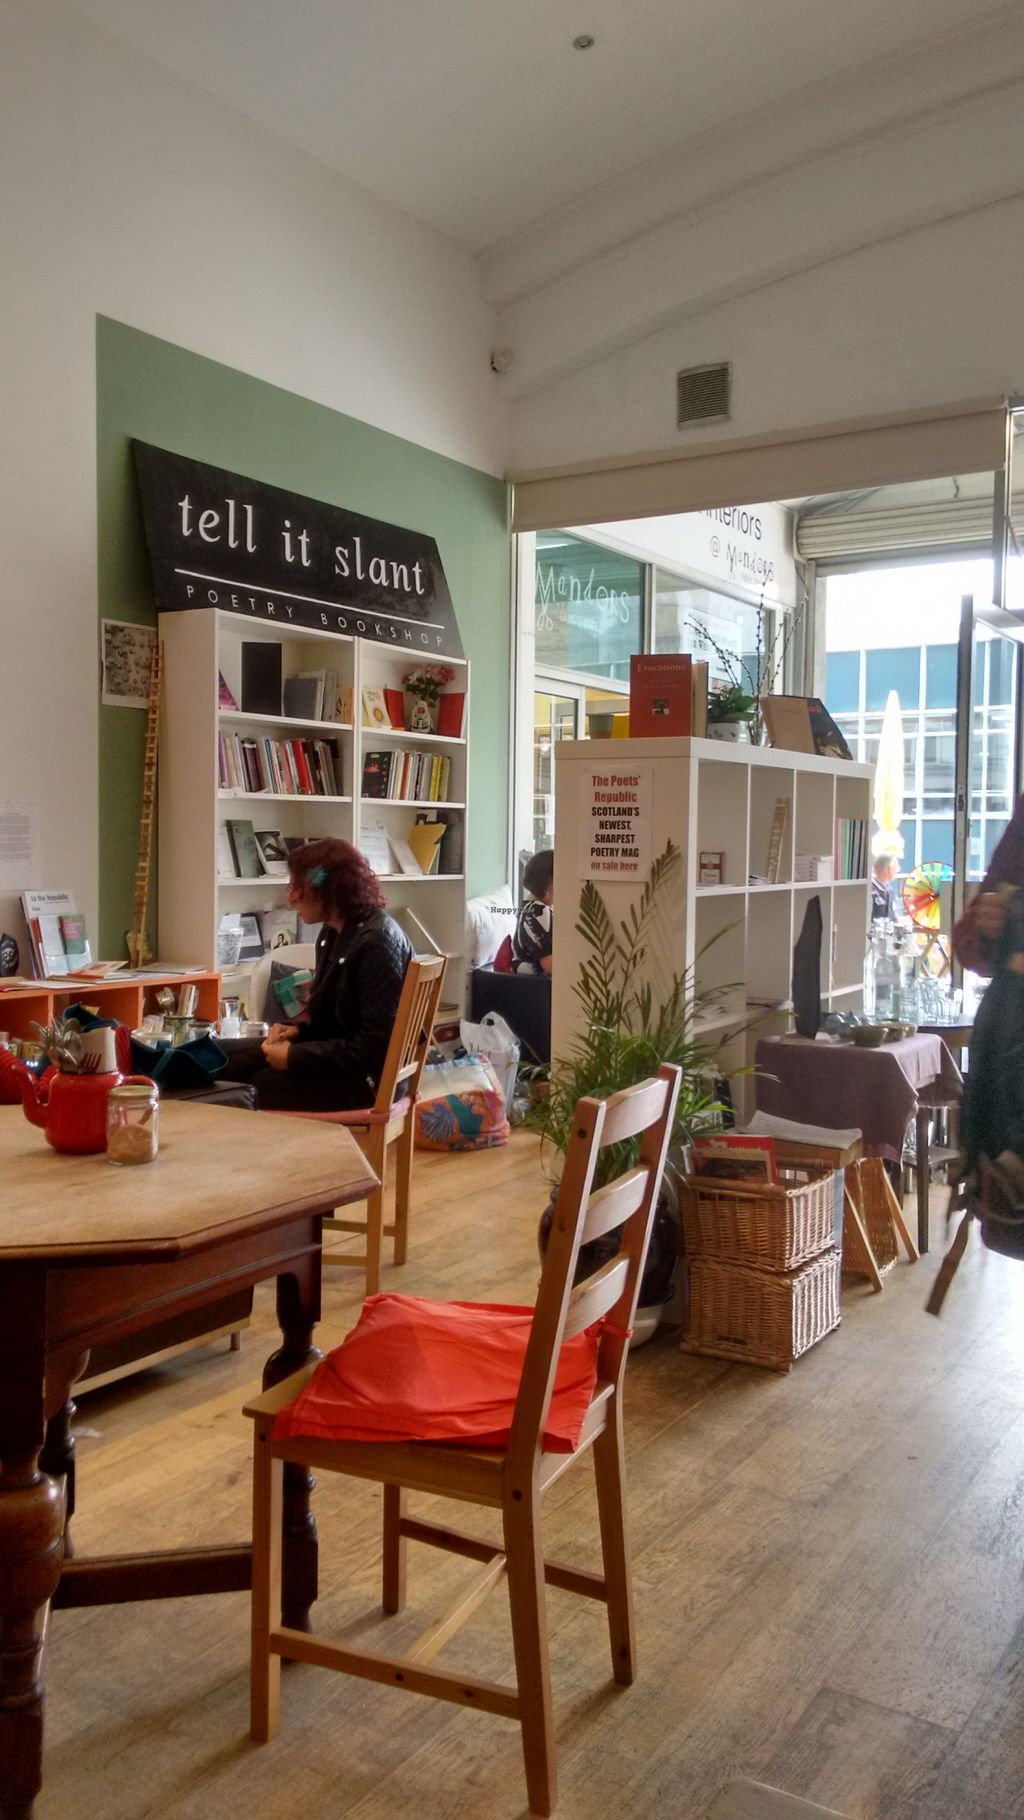 """Photo of The Project Cafe  by <a href=""""/members/profile/craigmc"""">craigmc</a> <br/>The reading room <br/> September 9, 2015  - <a href='/contact/abuse/image/47424/117011'>Report</a>"""